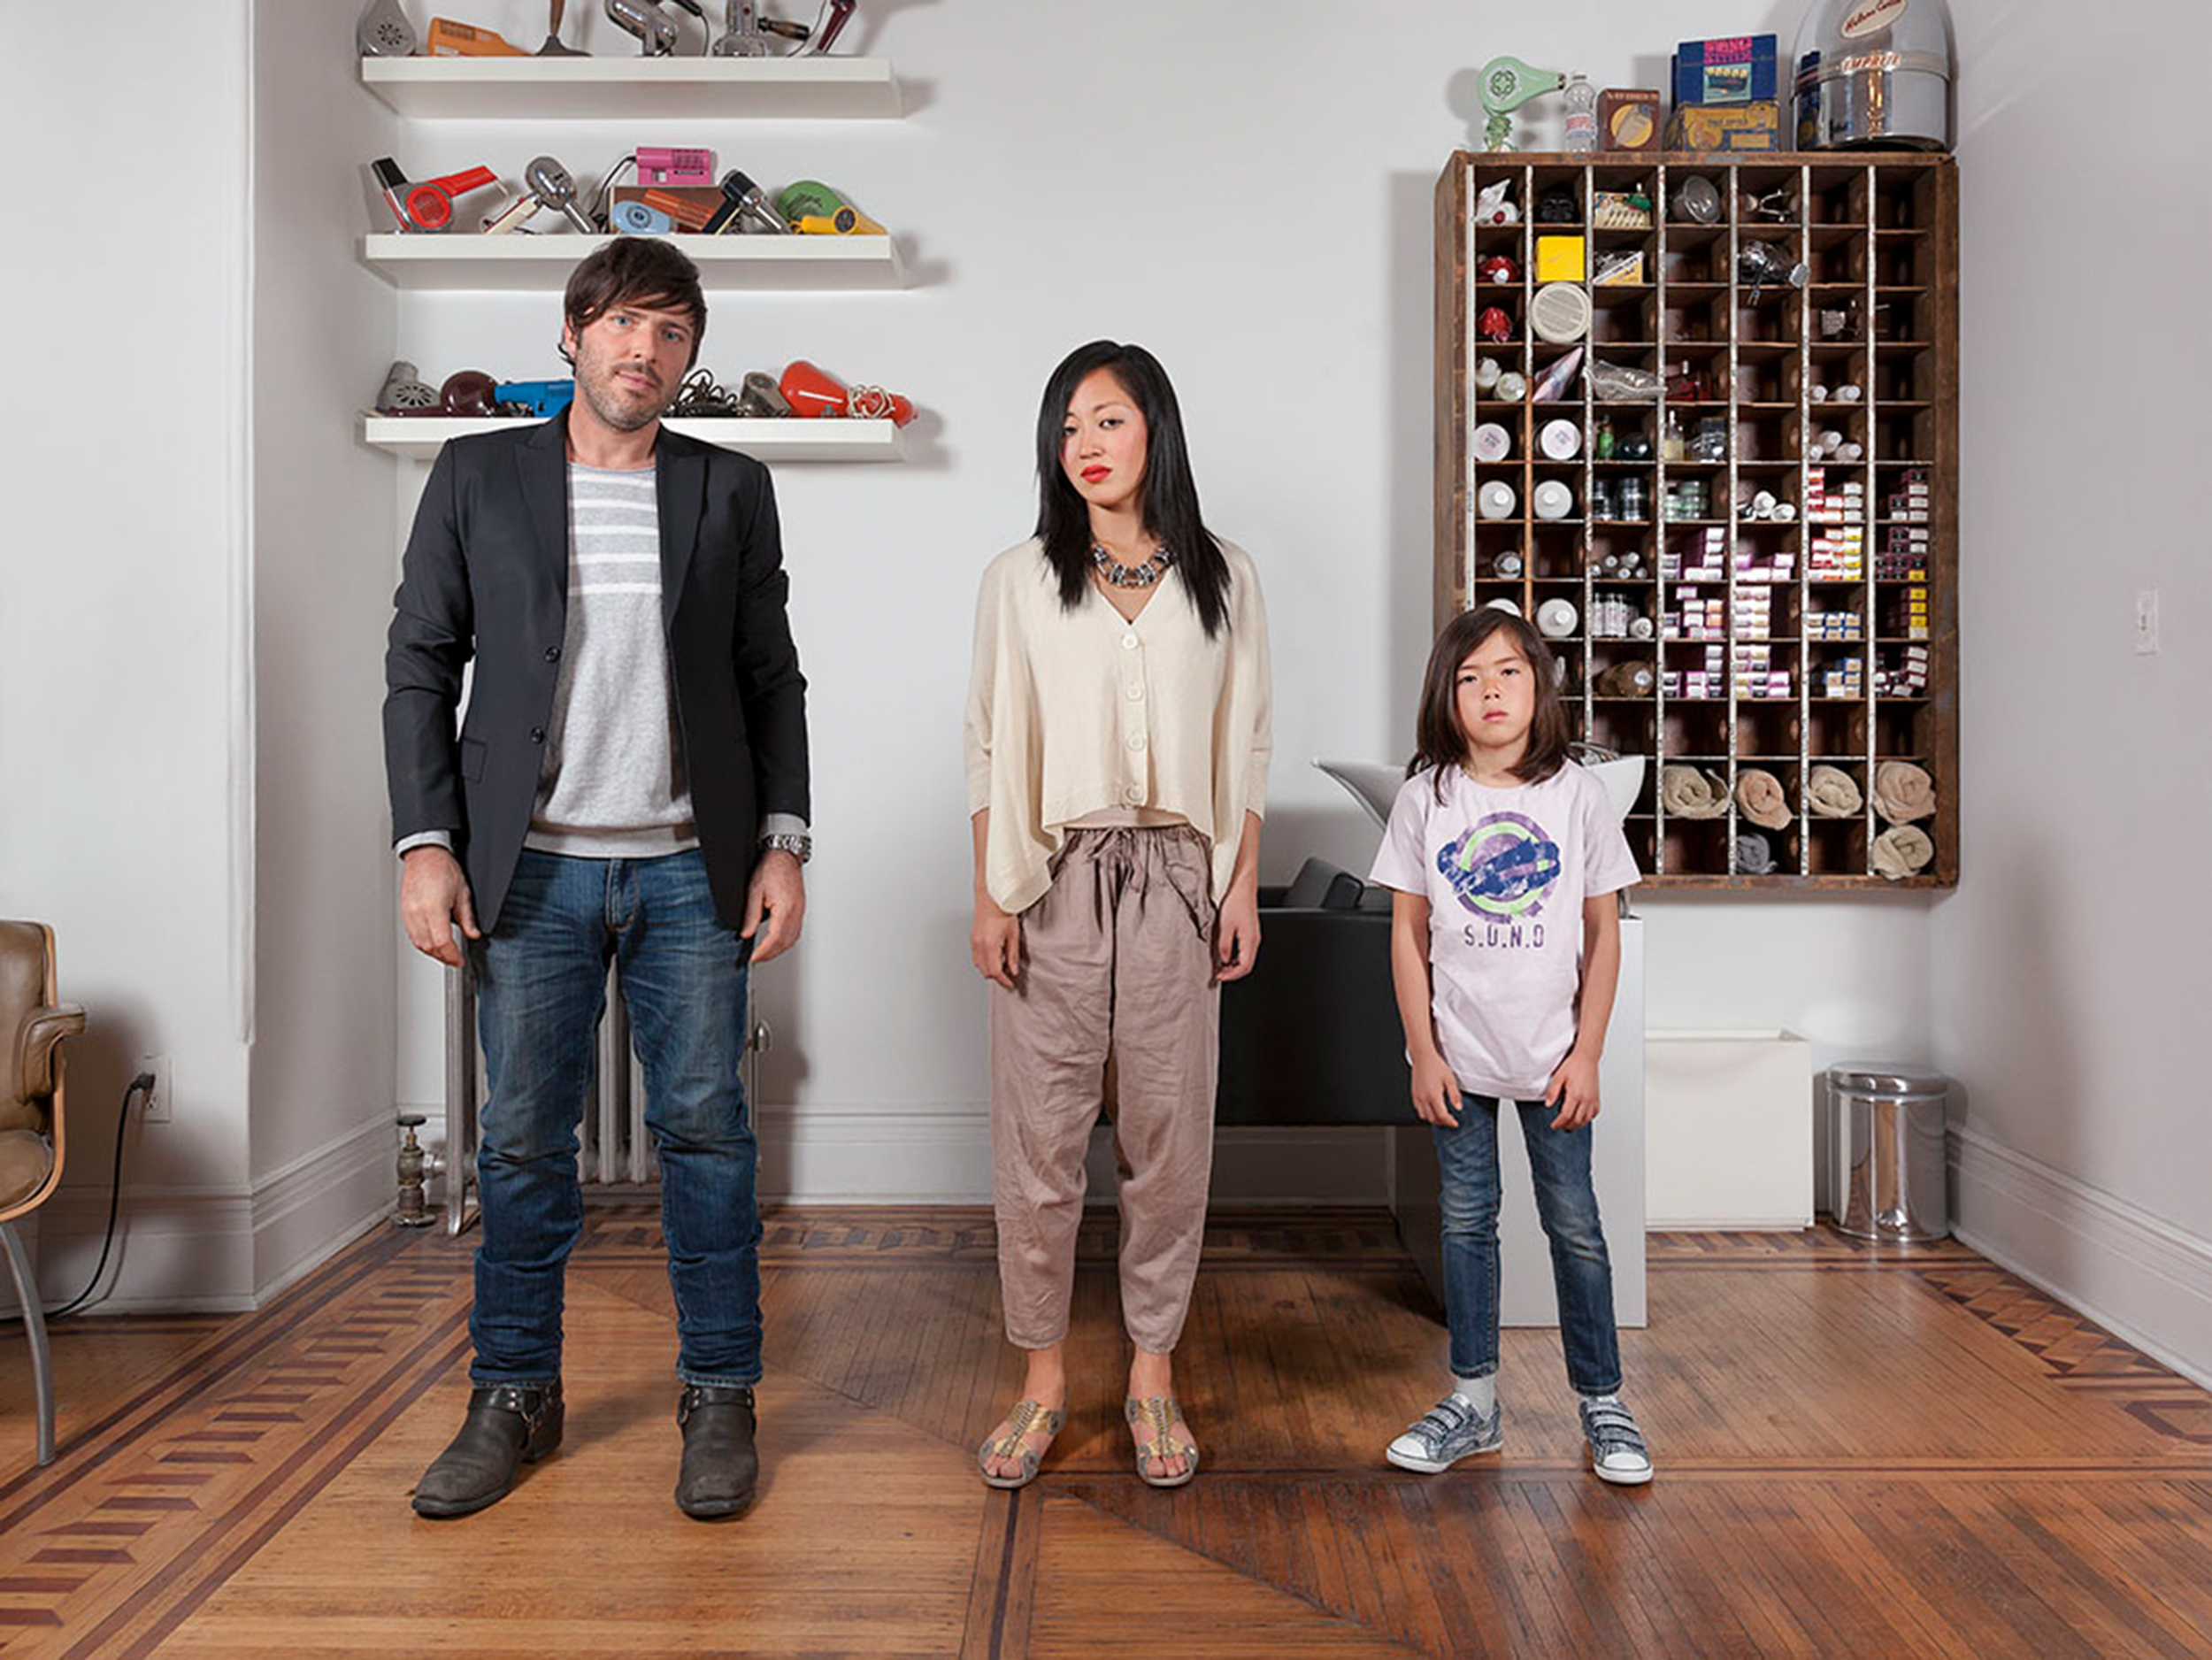 Meet the families of 2030: the factors shaping future generations